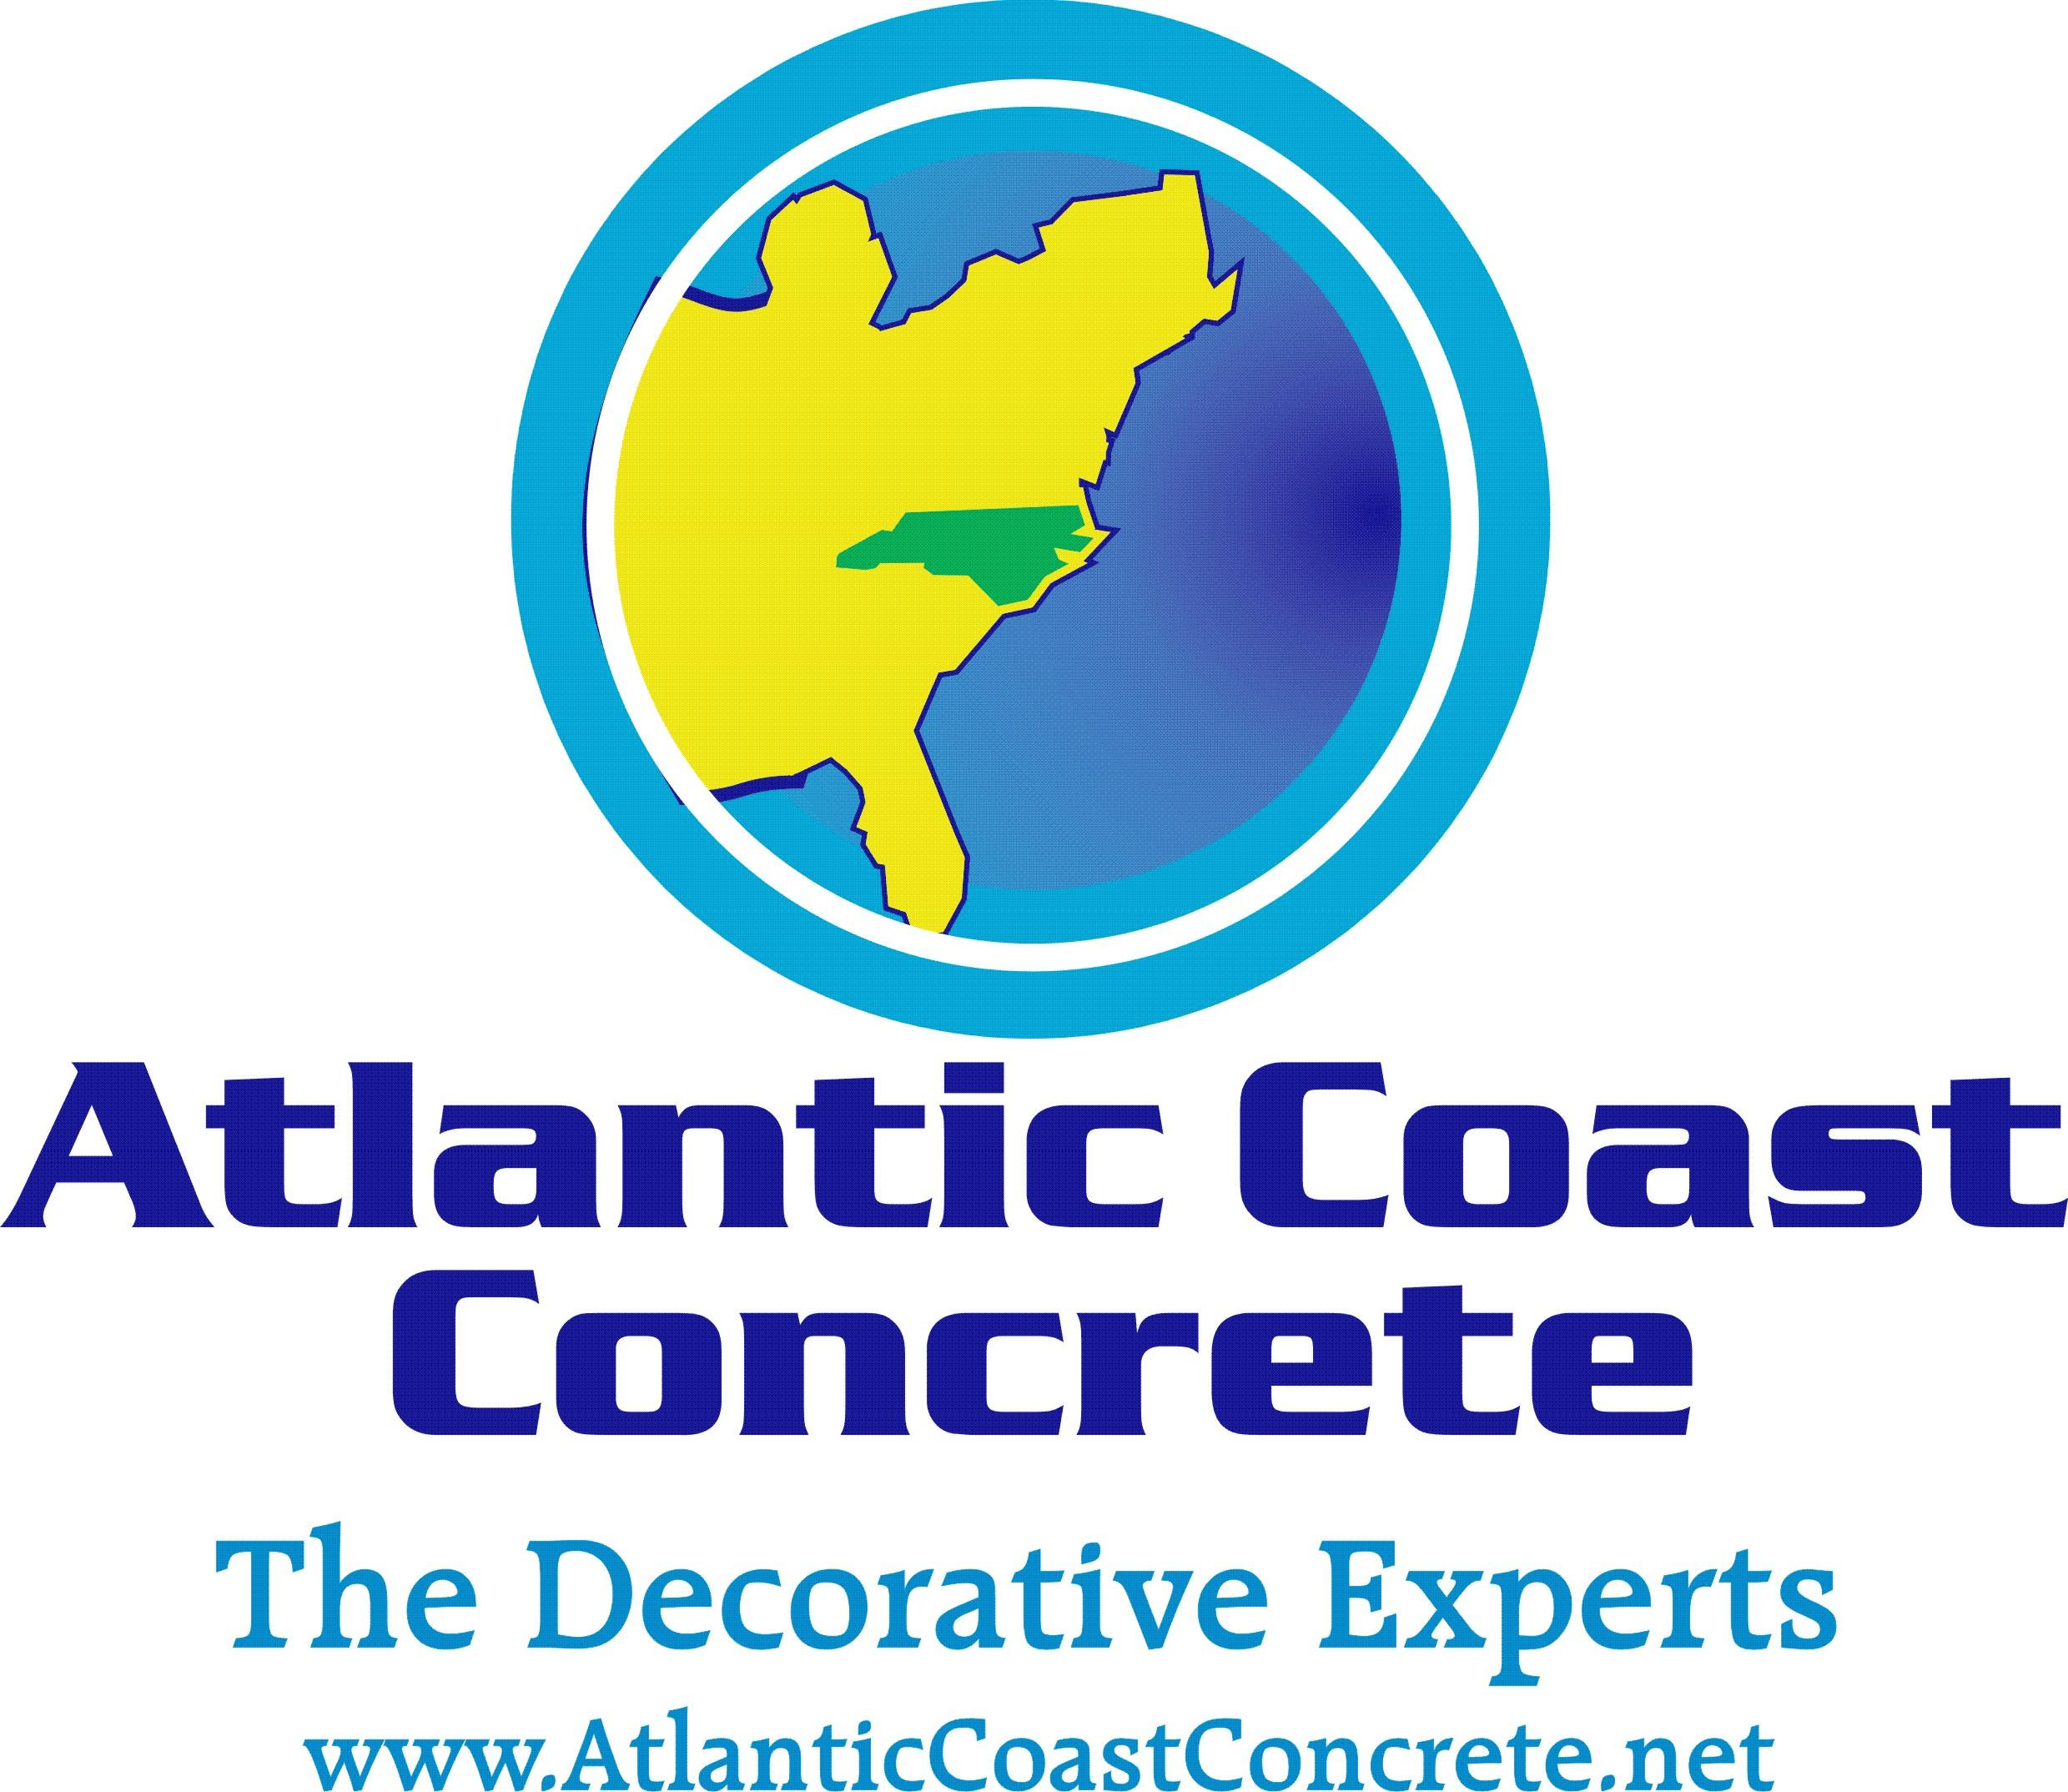 Atlantic Coast Concrete